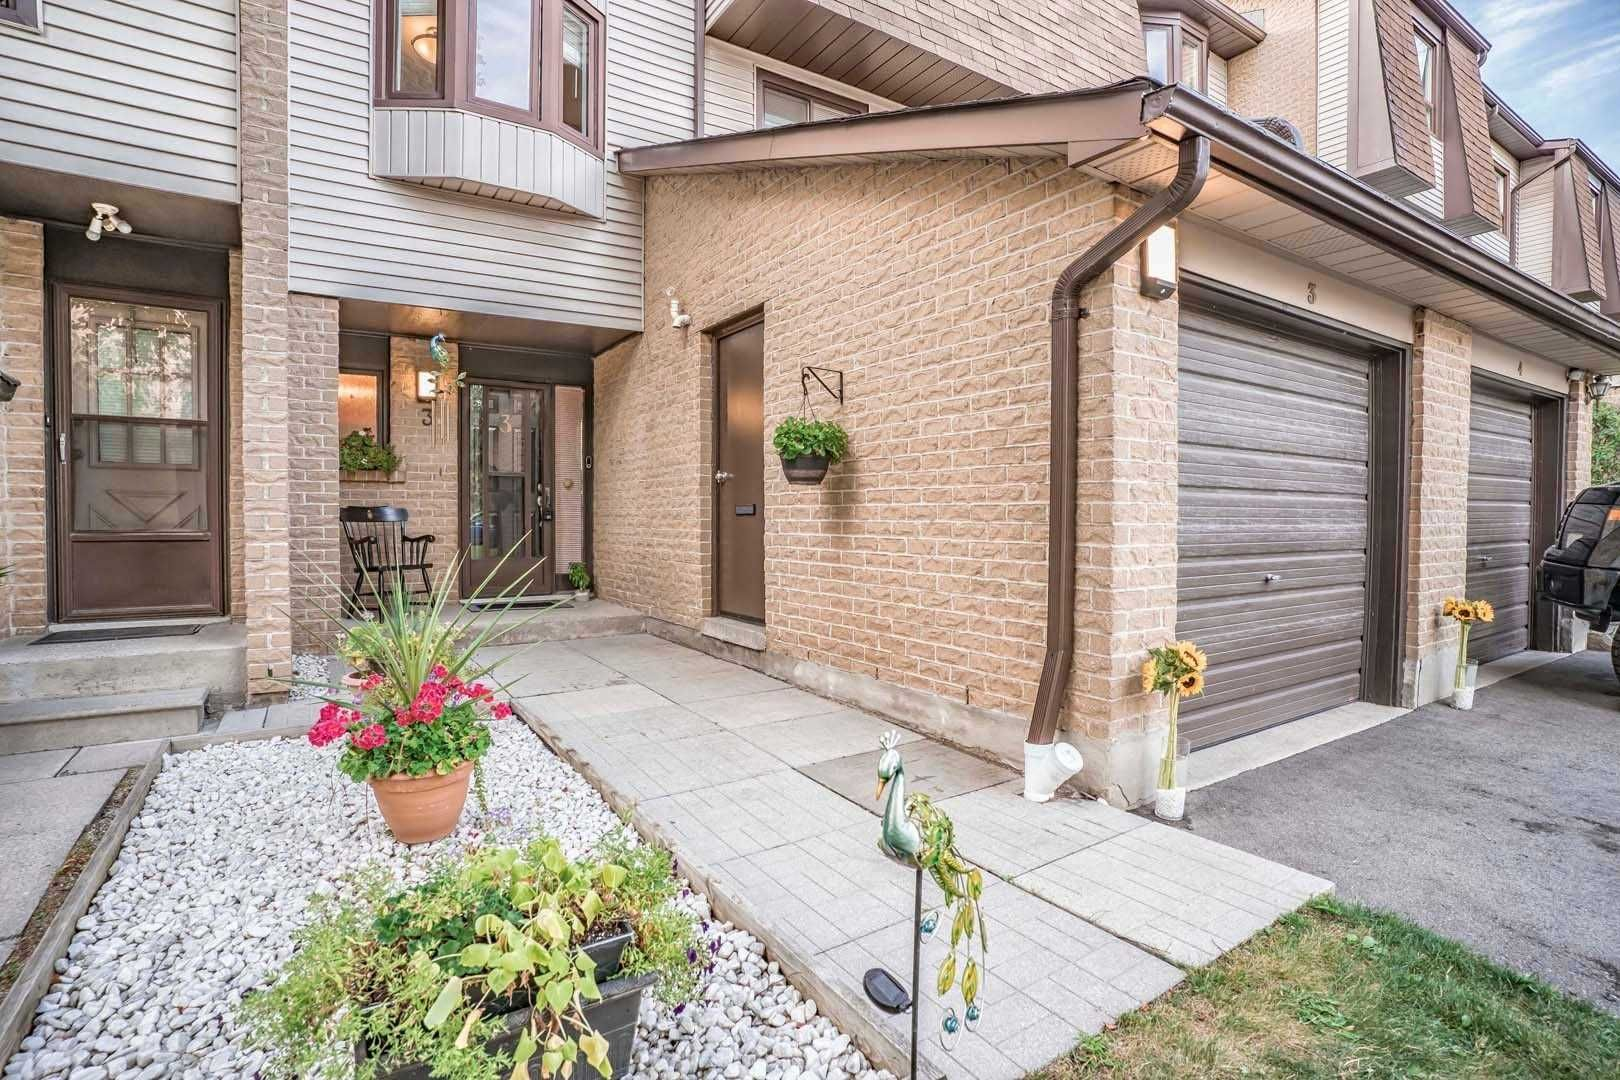 Main Photo: #3 6040 Montevideo Road in Mississauga: Meadowvale Condo for sale : MLS®# W4888521